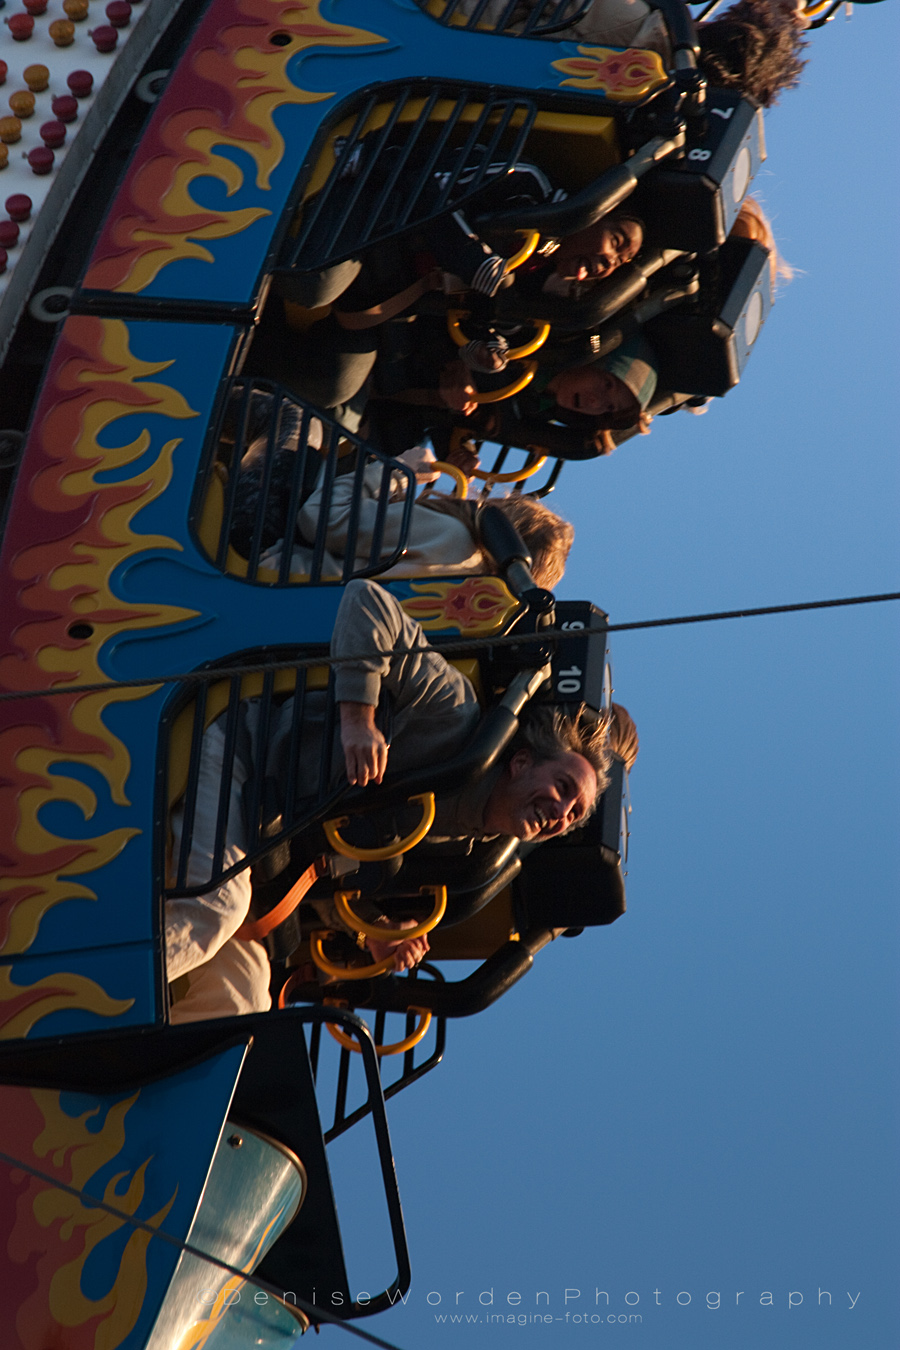 Fair goers enjoy the ride